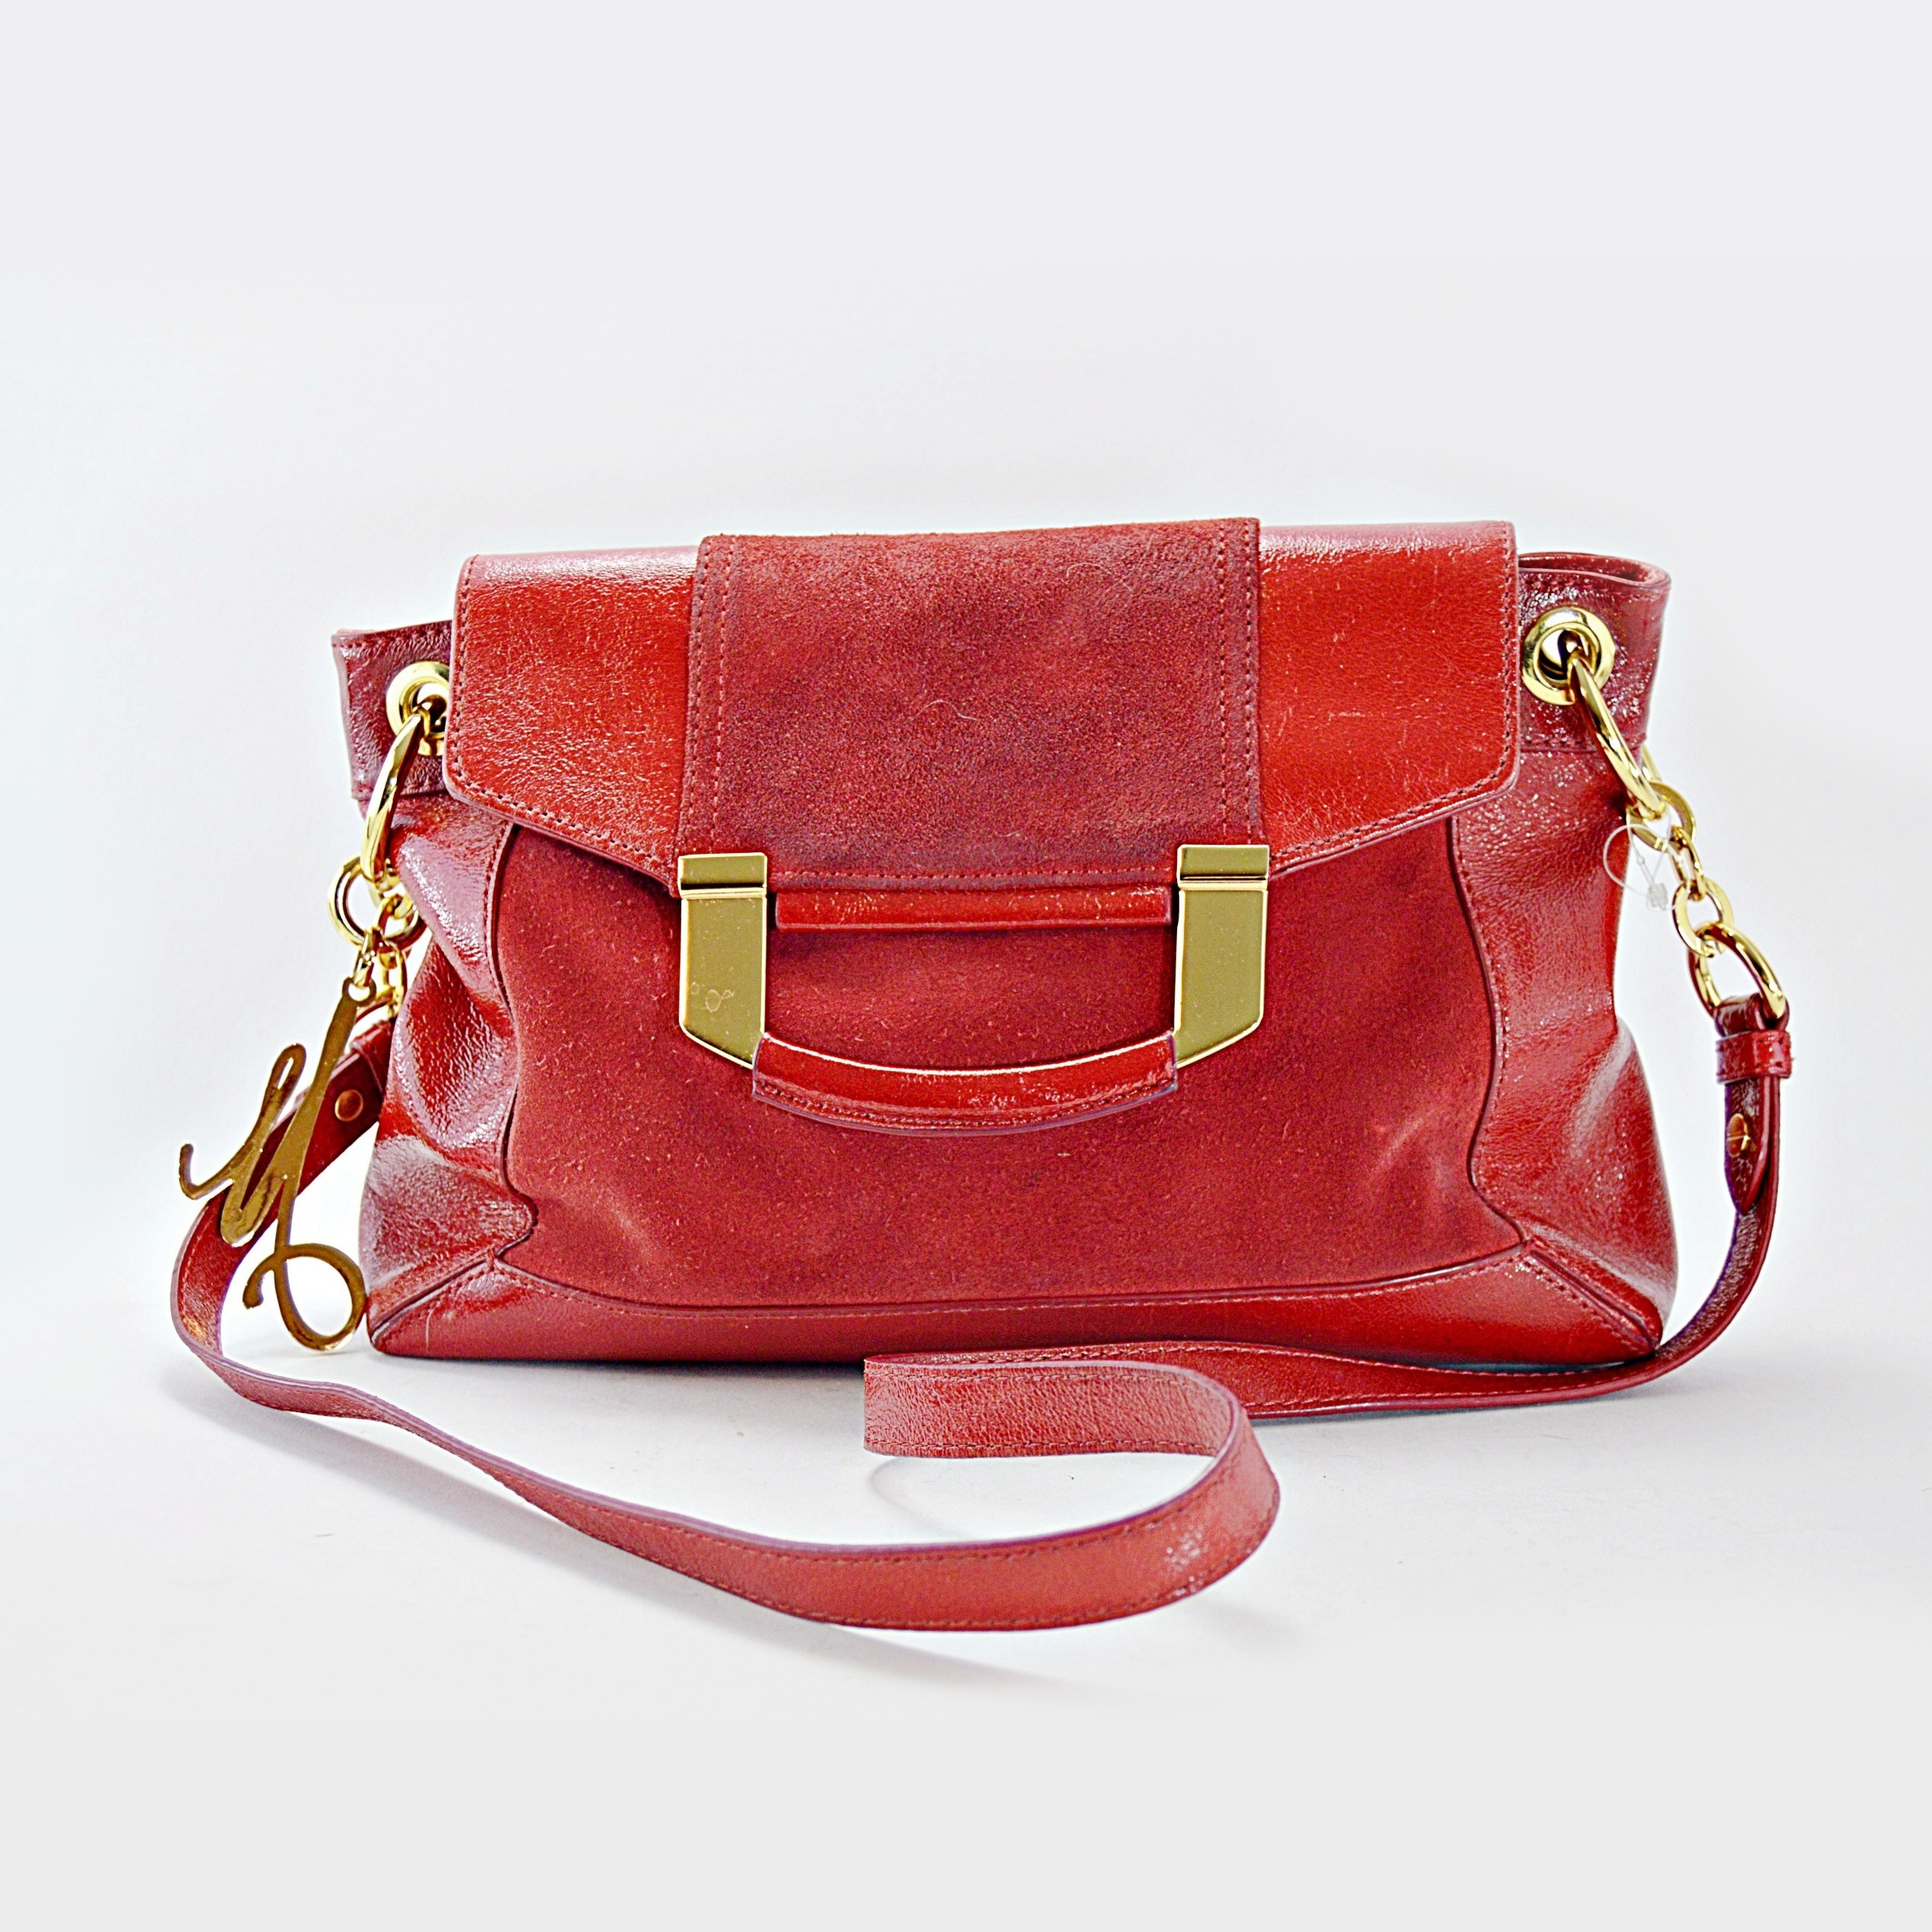 Milly Red Patent Leather and Suede Handbag